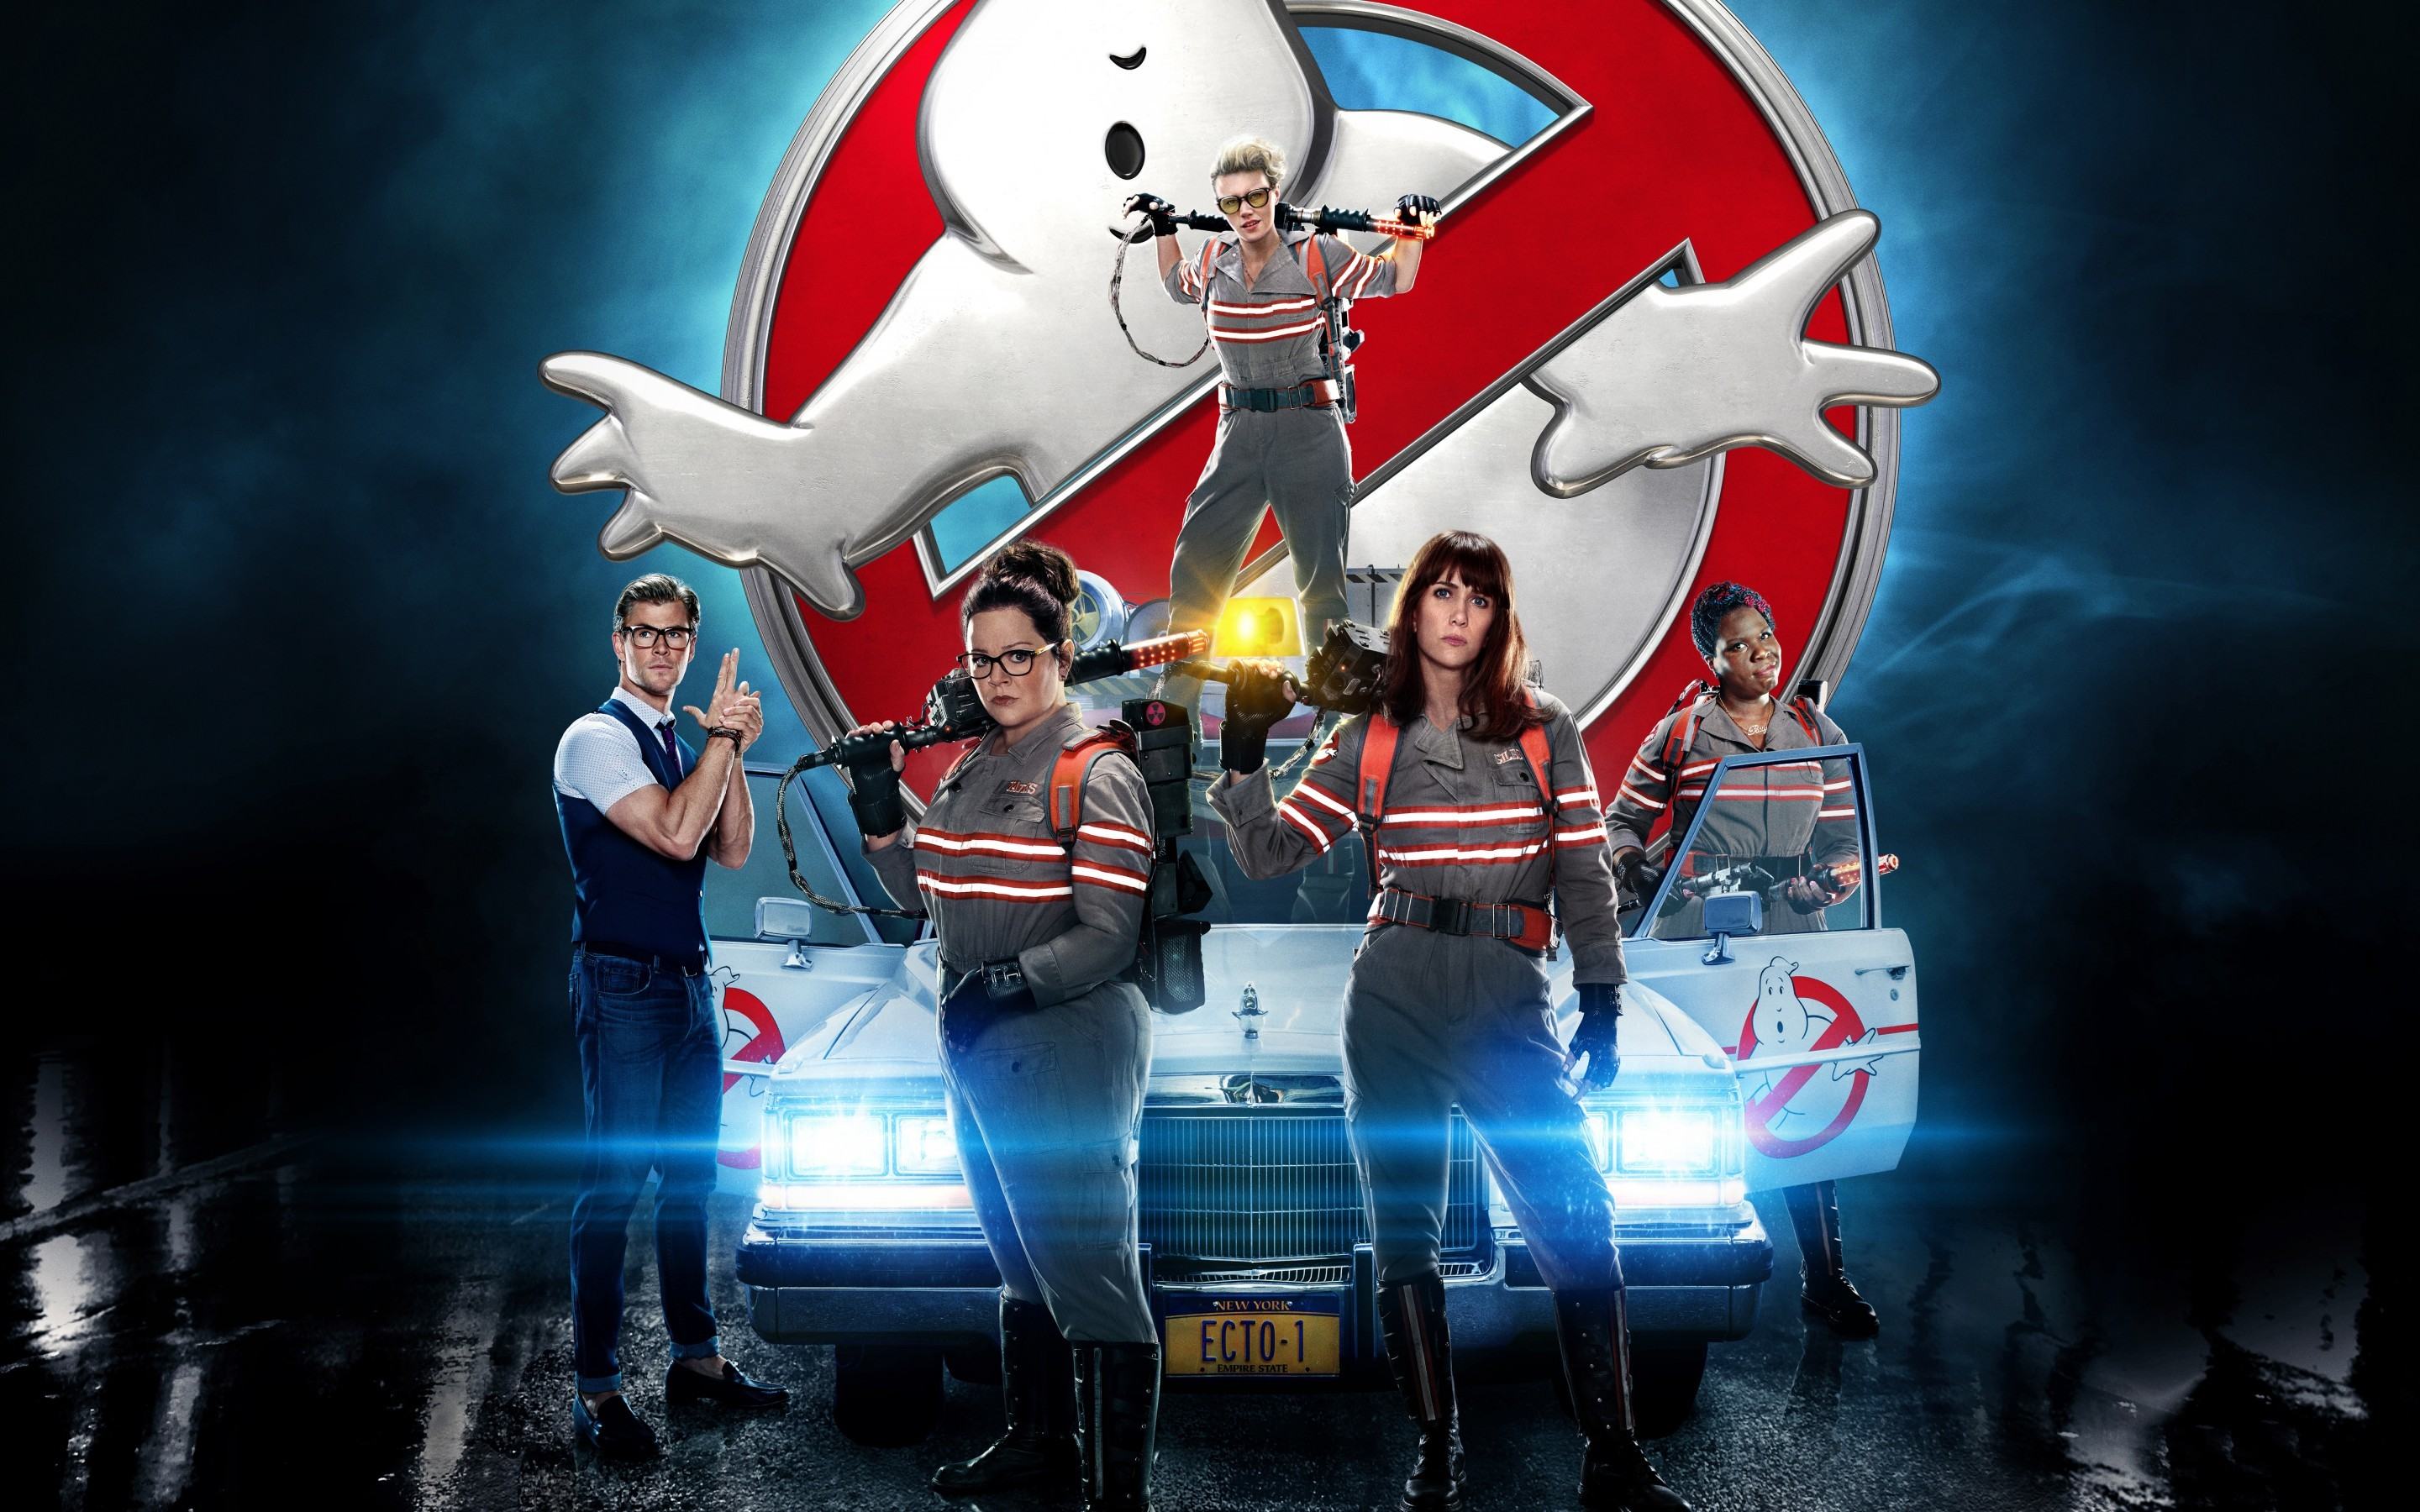 2880x1800 Movies / Ghostbusters Wallpaper